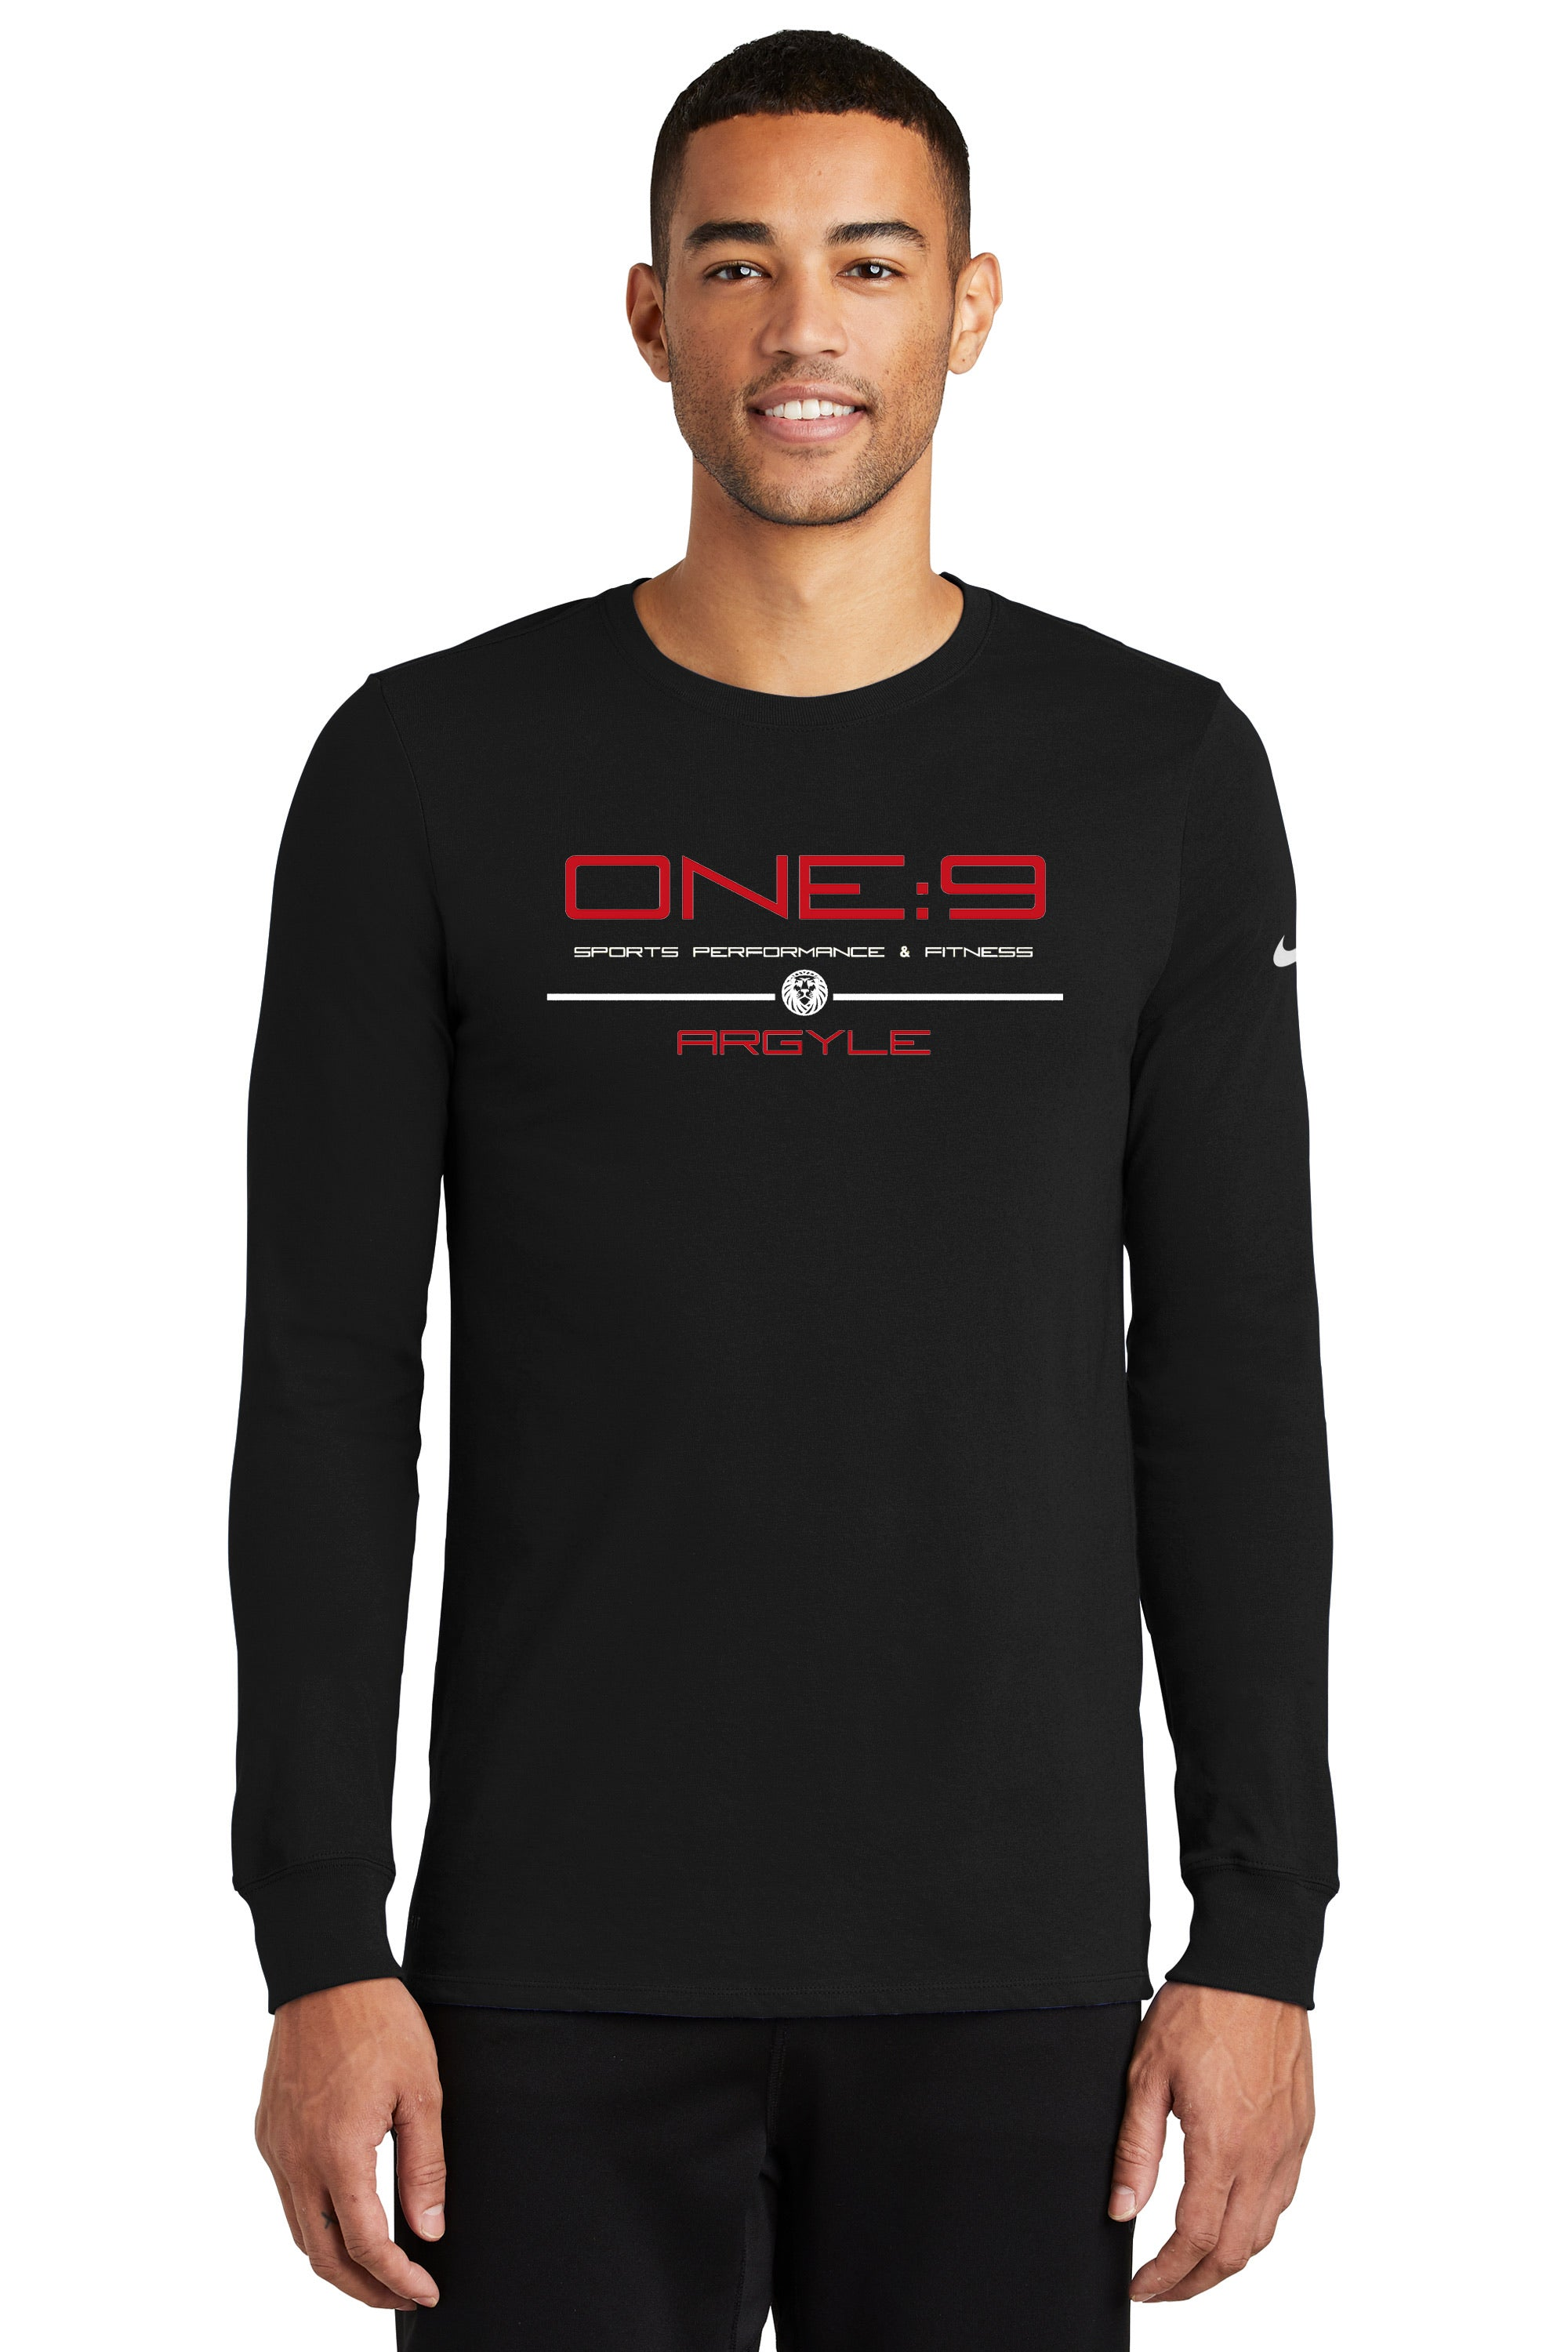 Nike Dri-FIT Cotton/Poly Long Sleeve- Black or Grey